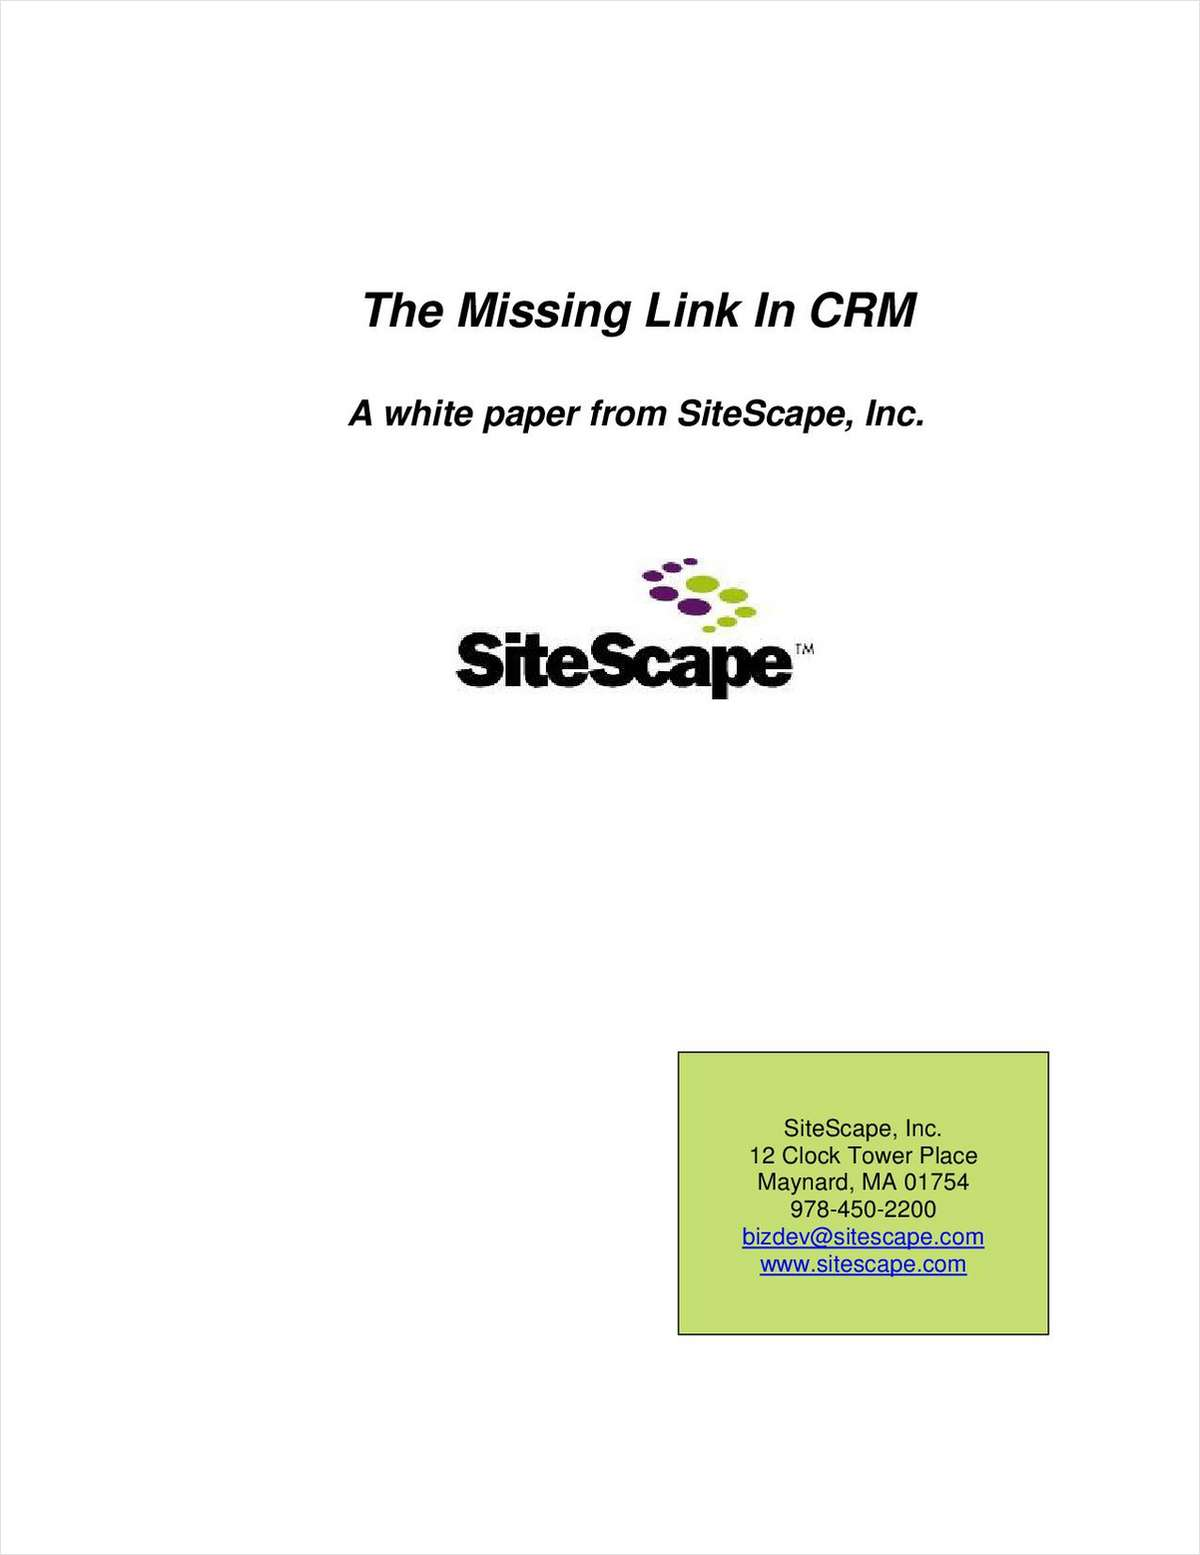 SiteScape - The Missing Link in CRM